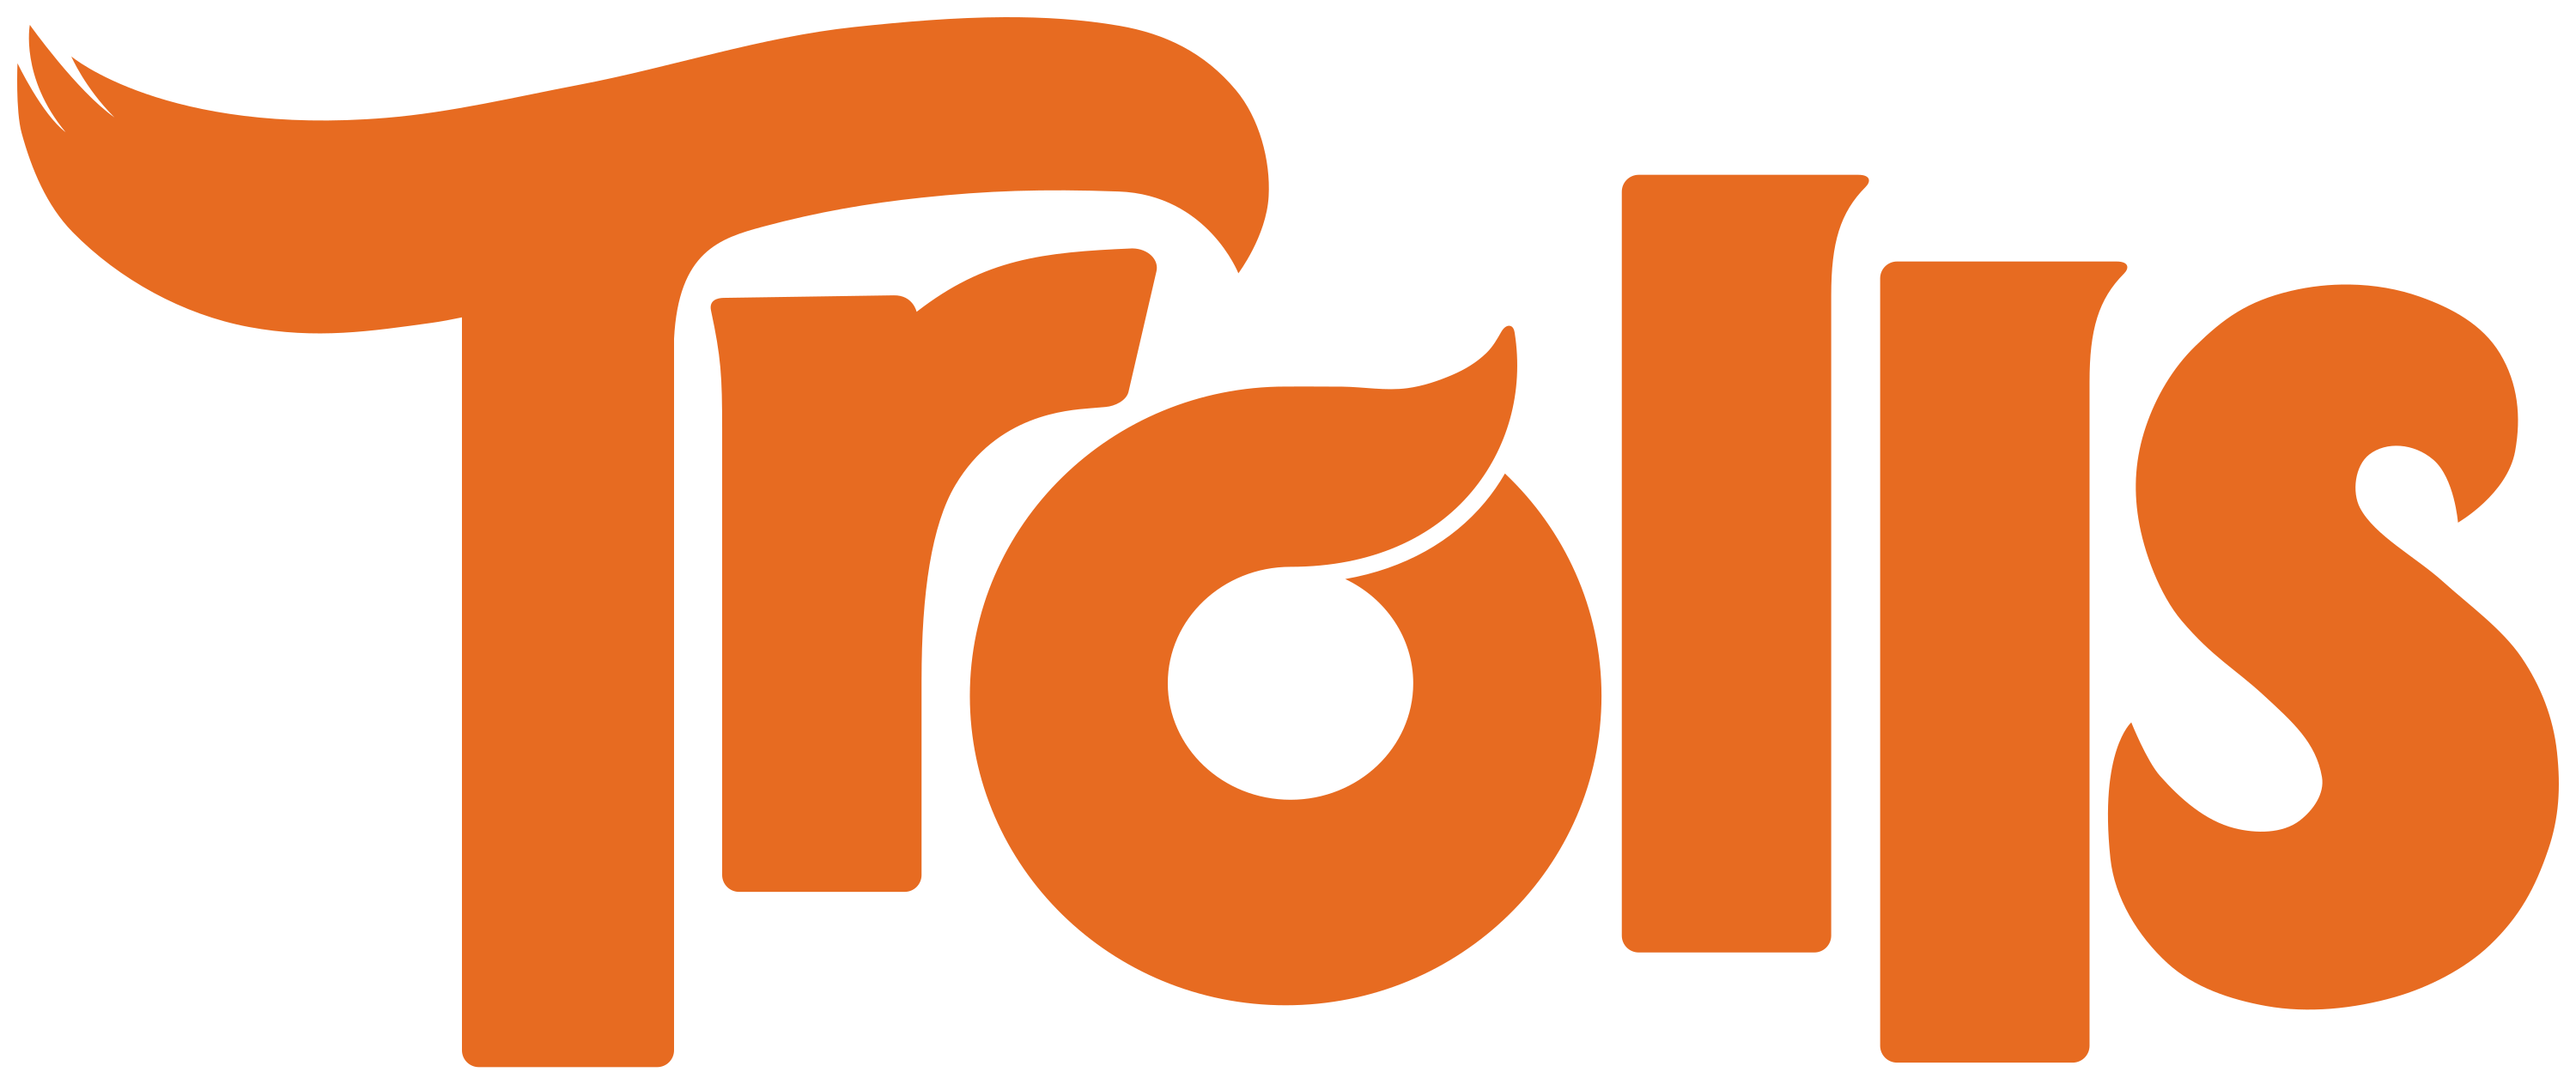 Trolls movie logo png. File svg wikimedia commons